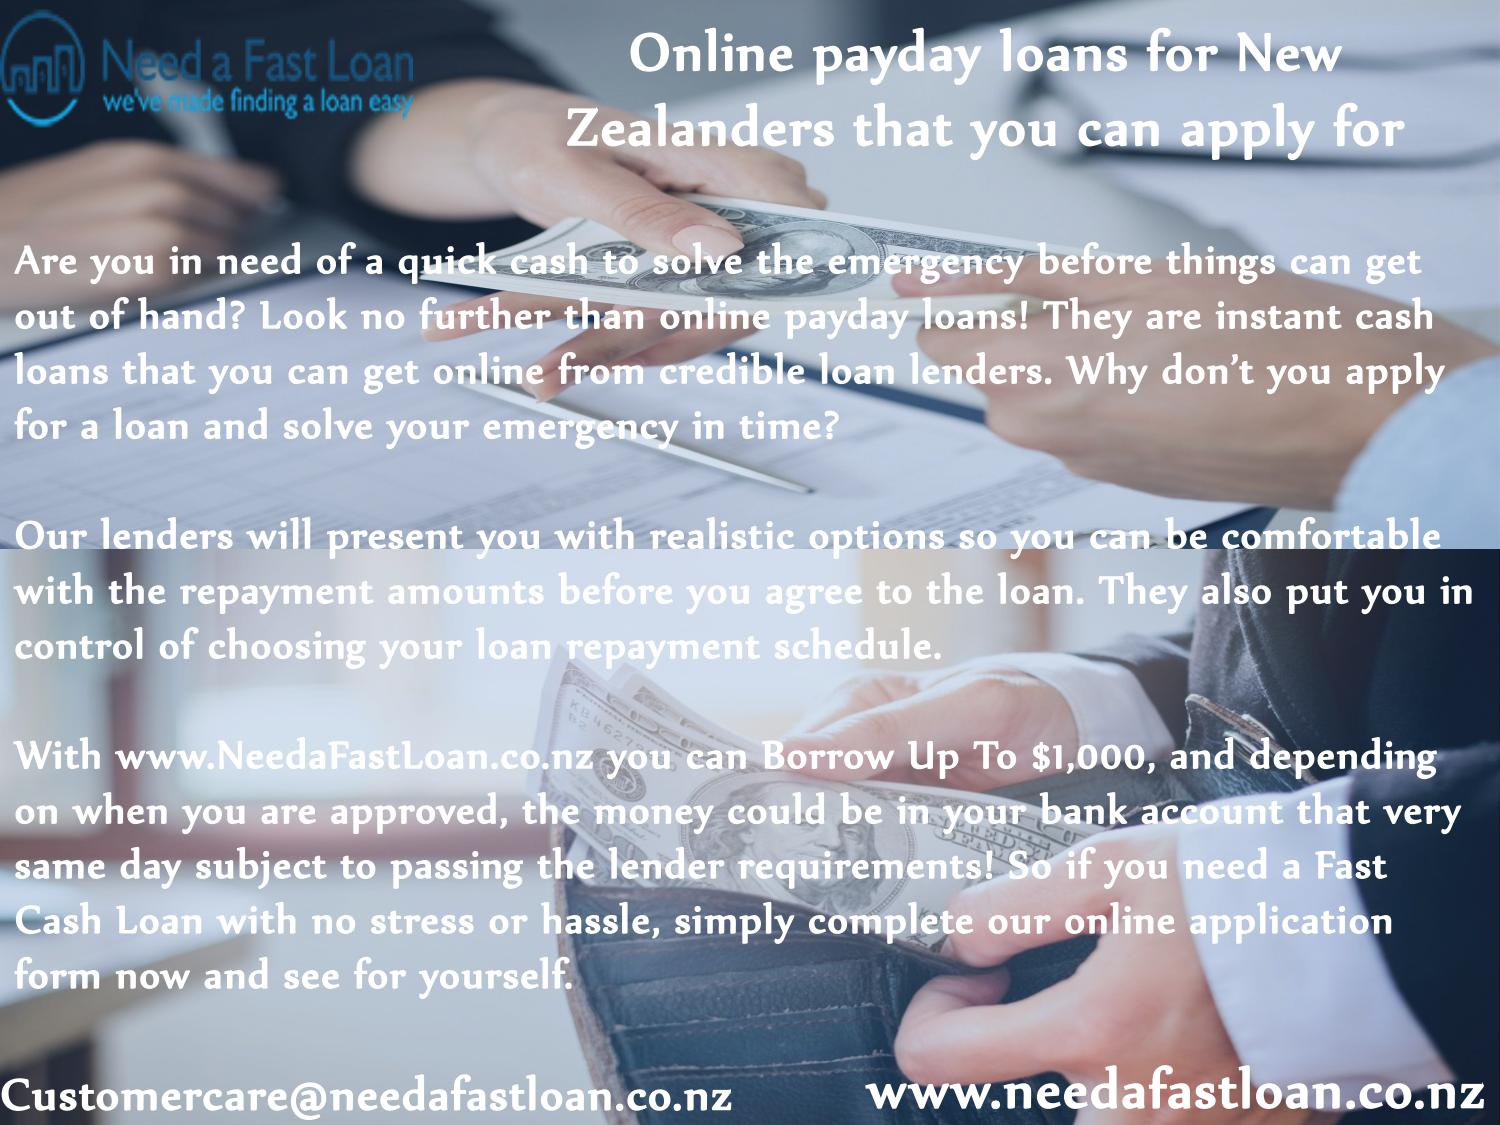 Online Payday Loan Lenders >> Online Payday Loans For New Zealanders That You Can Apply